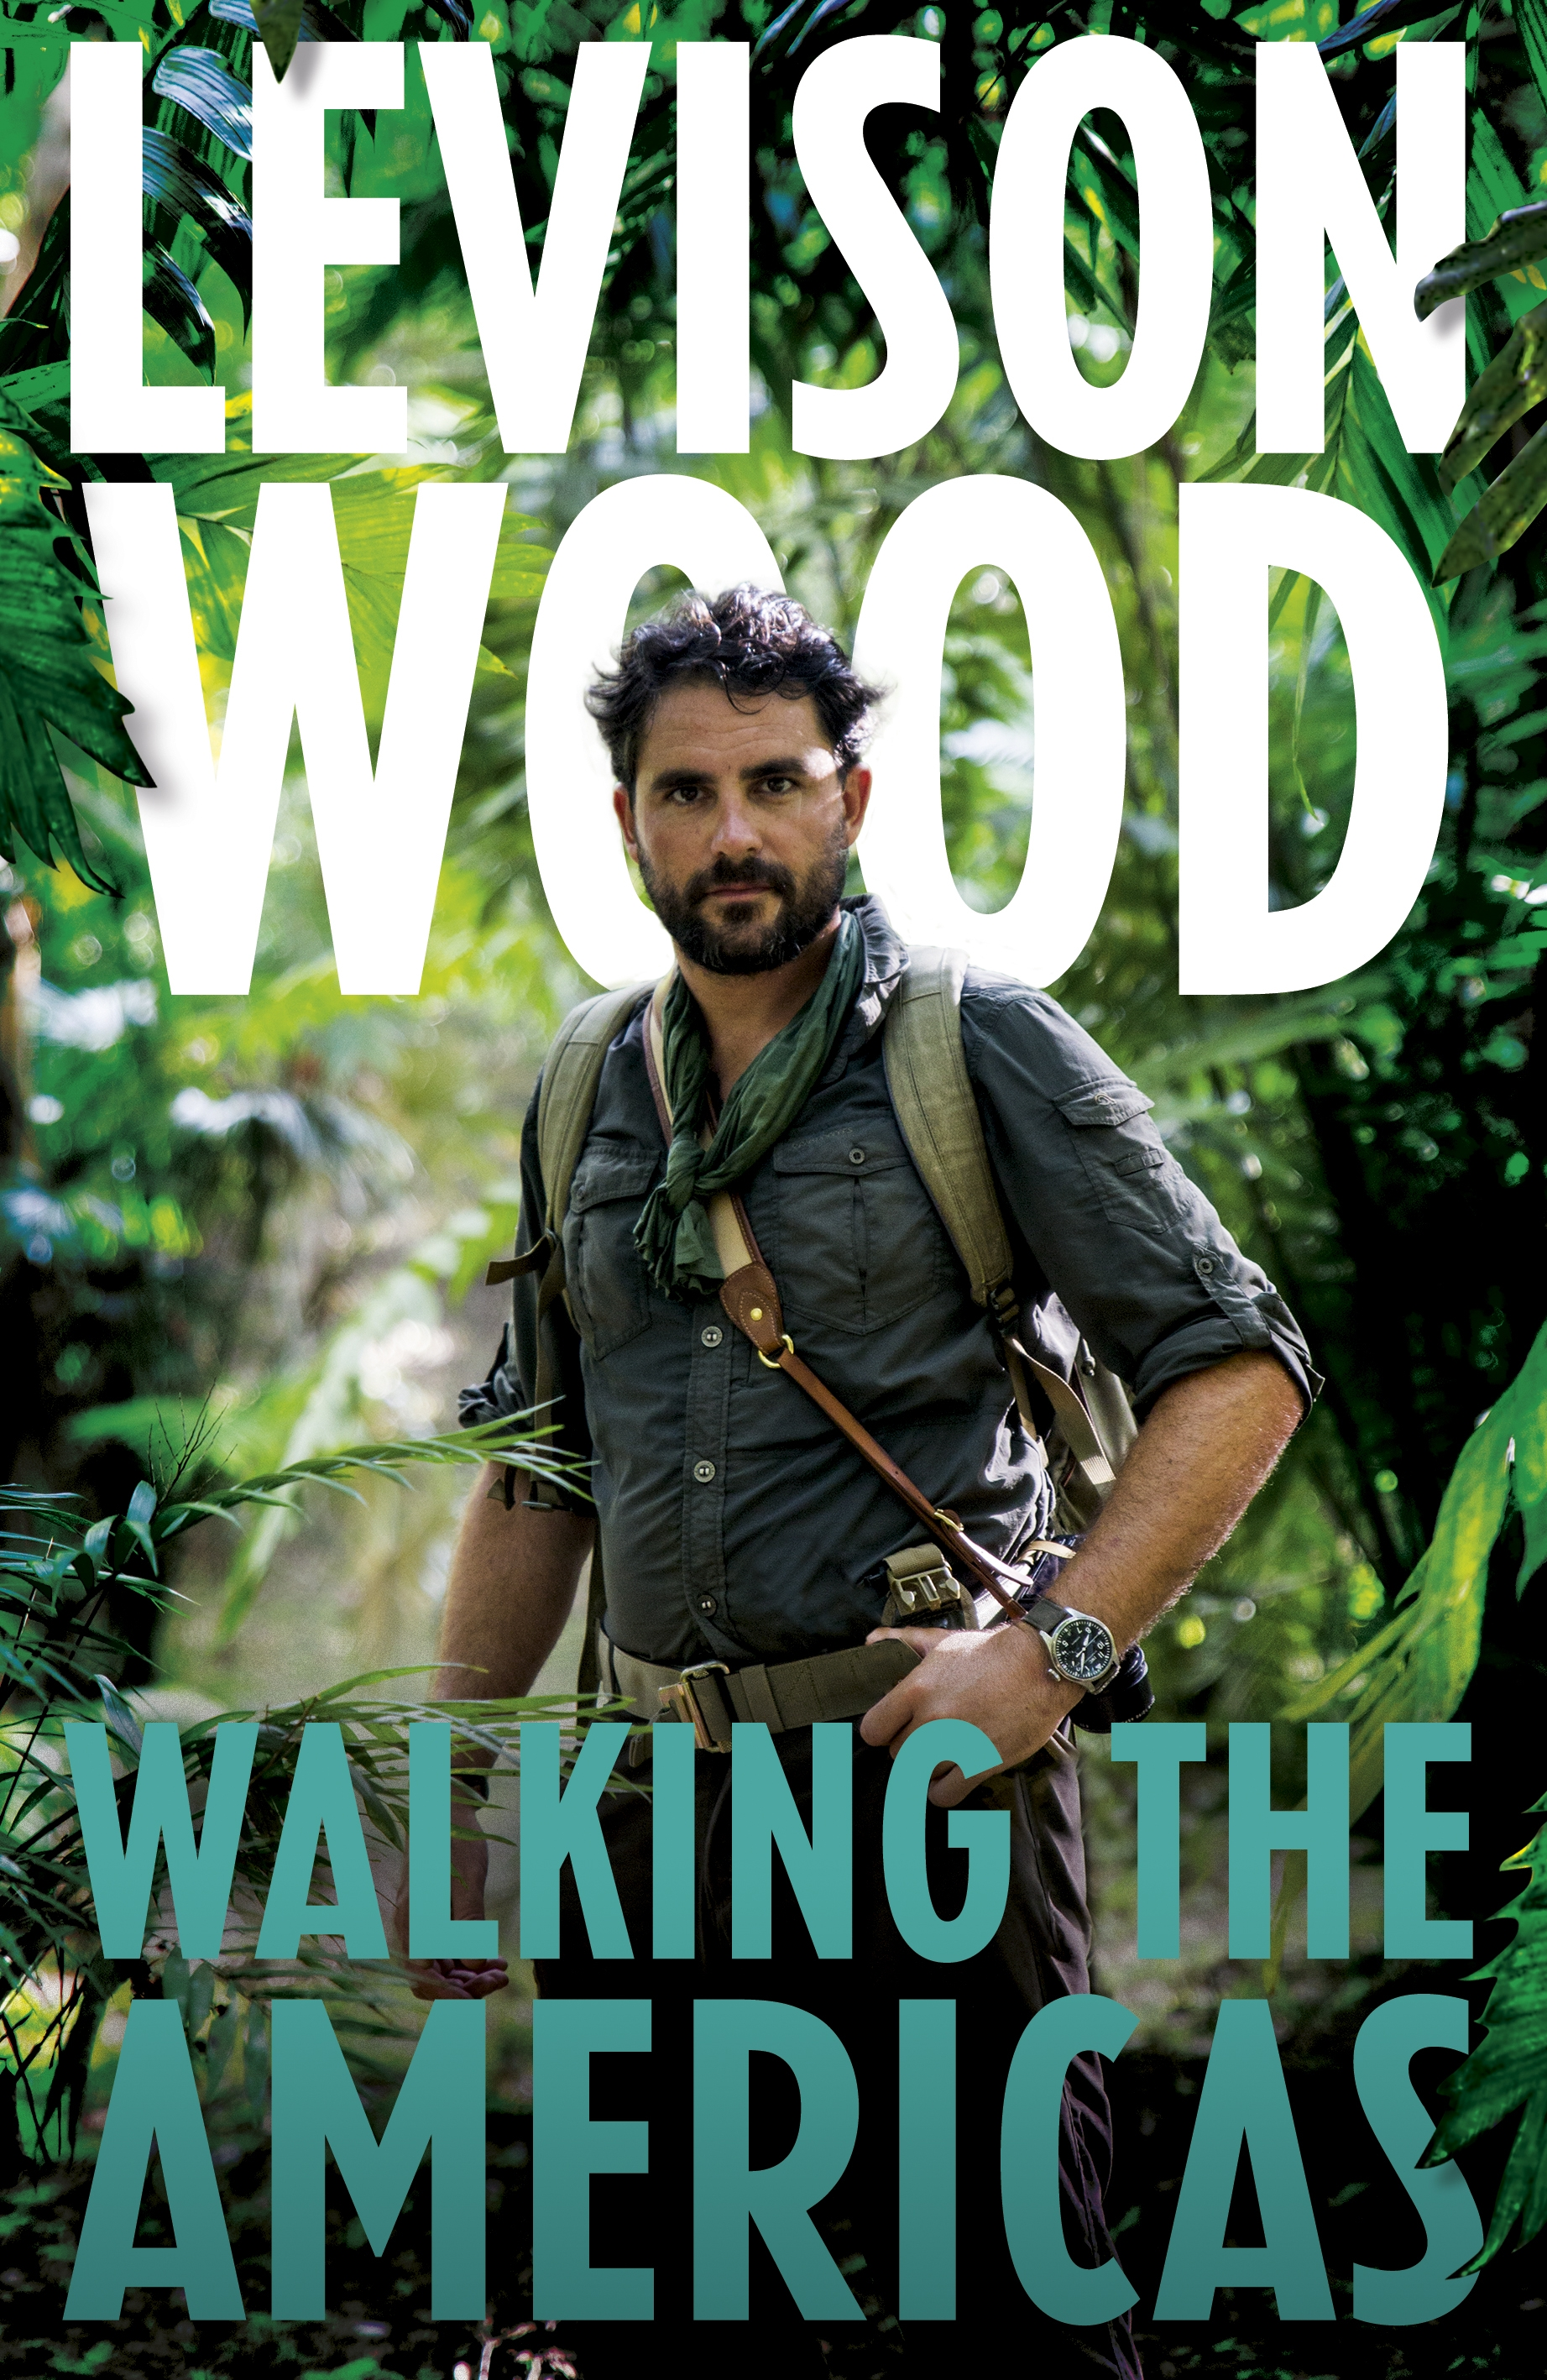 Walking The Americas was published by Hodder & Stoughton in February 2017. Available to purchase  here .